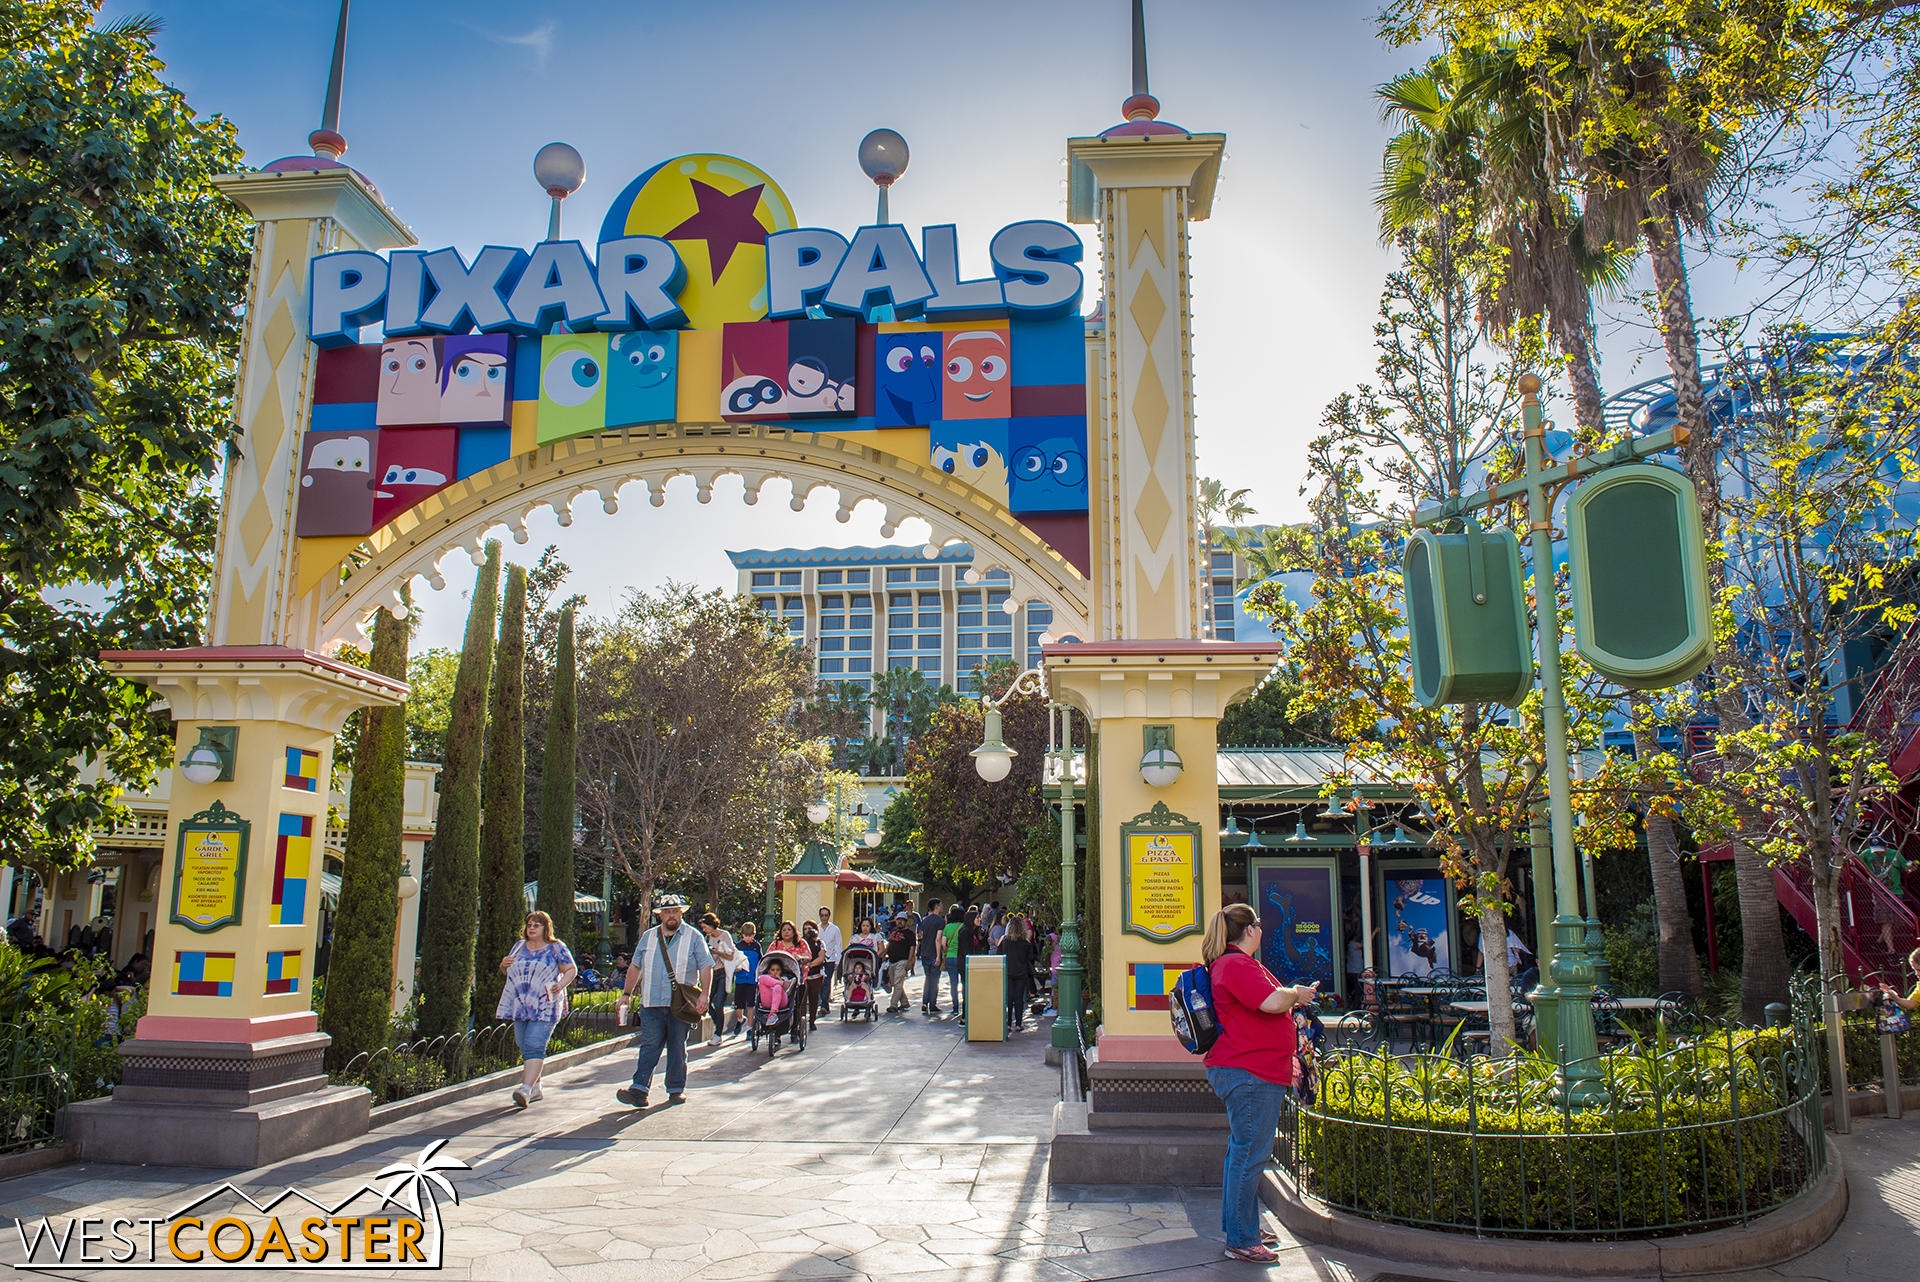 Pixar Pals is the name of the activity area that's taken over the Boardwalk Restaurants part of Paradise Pier.